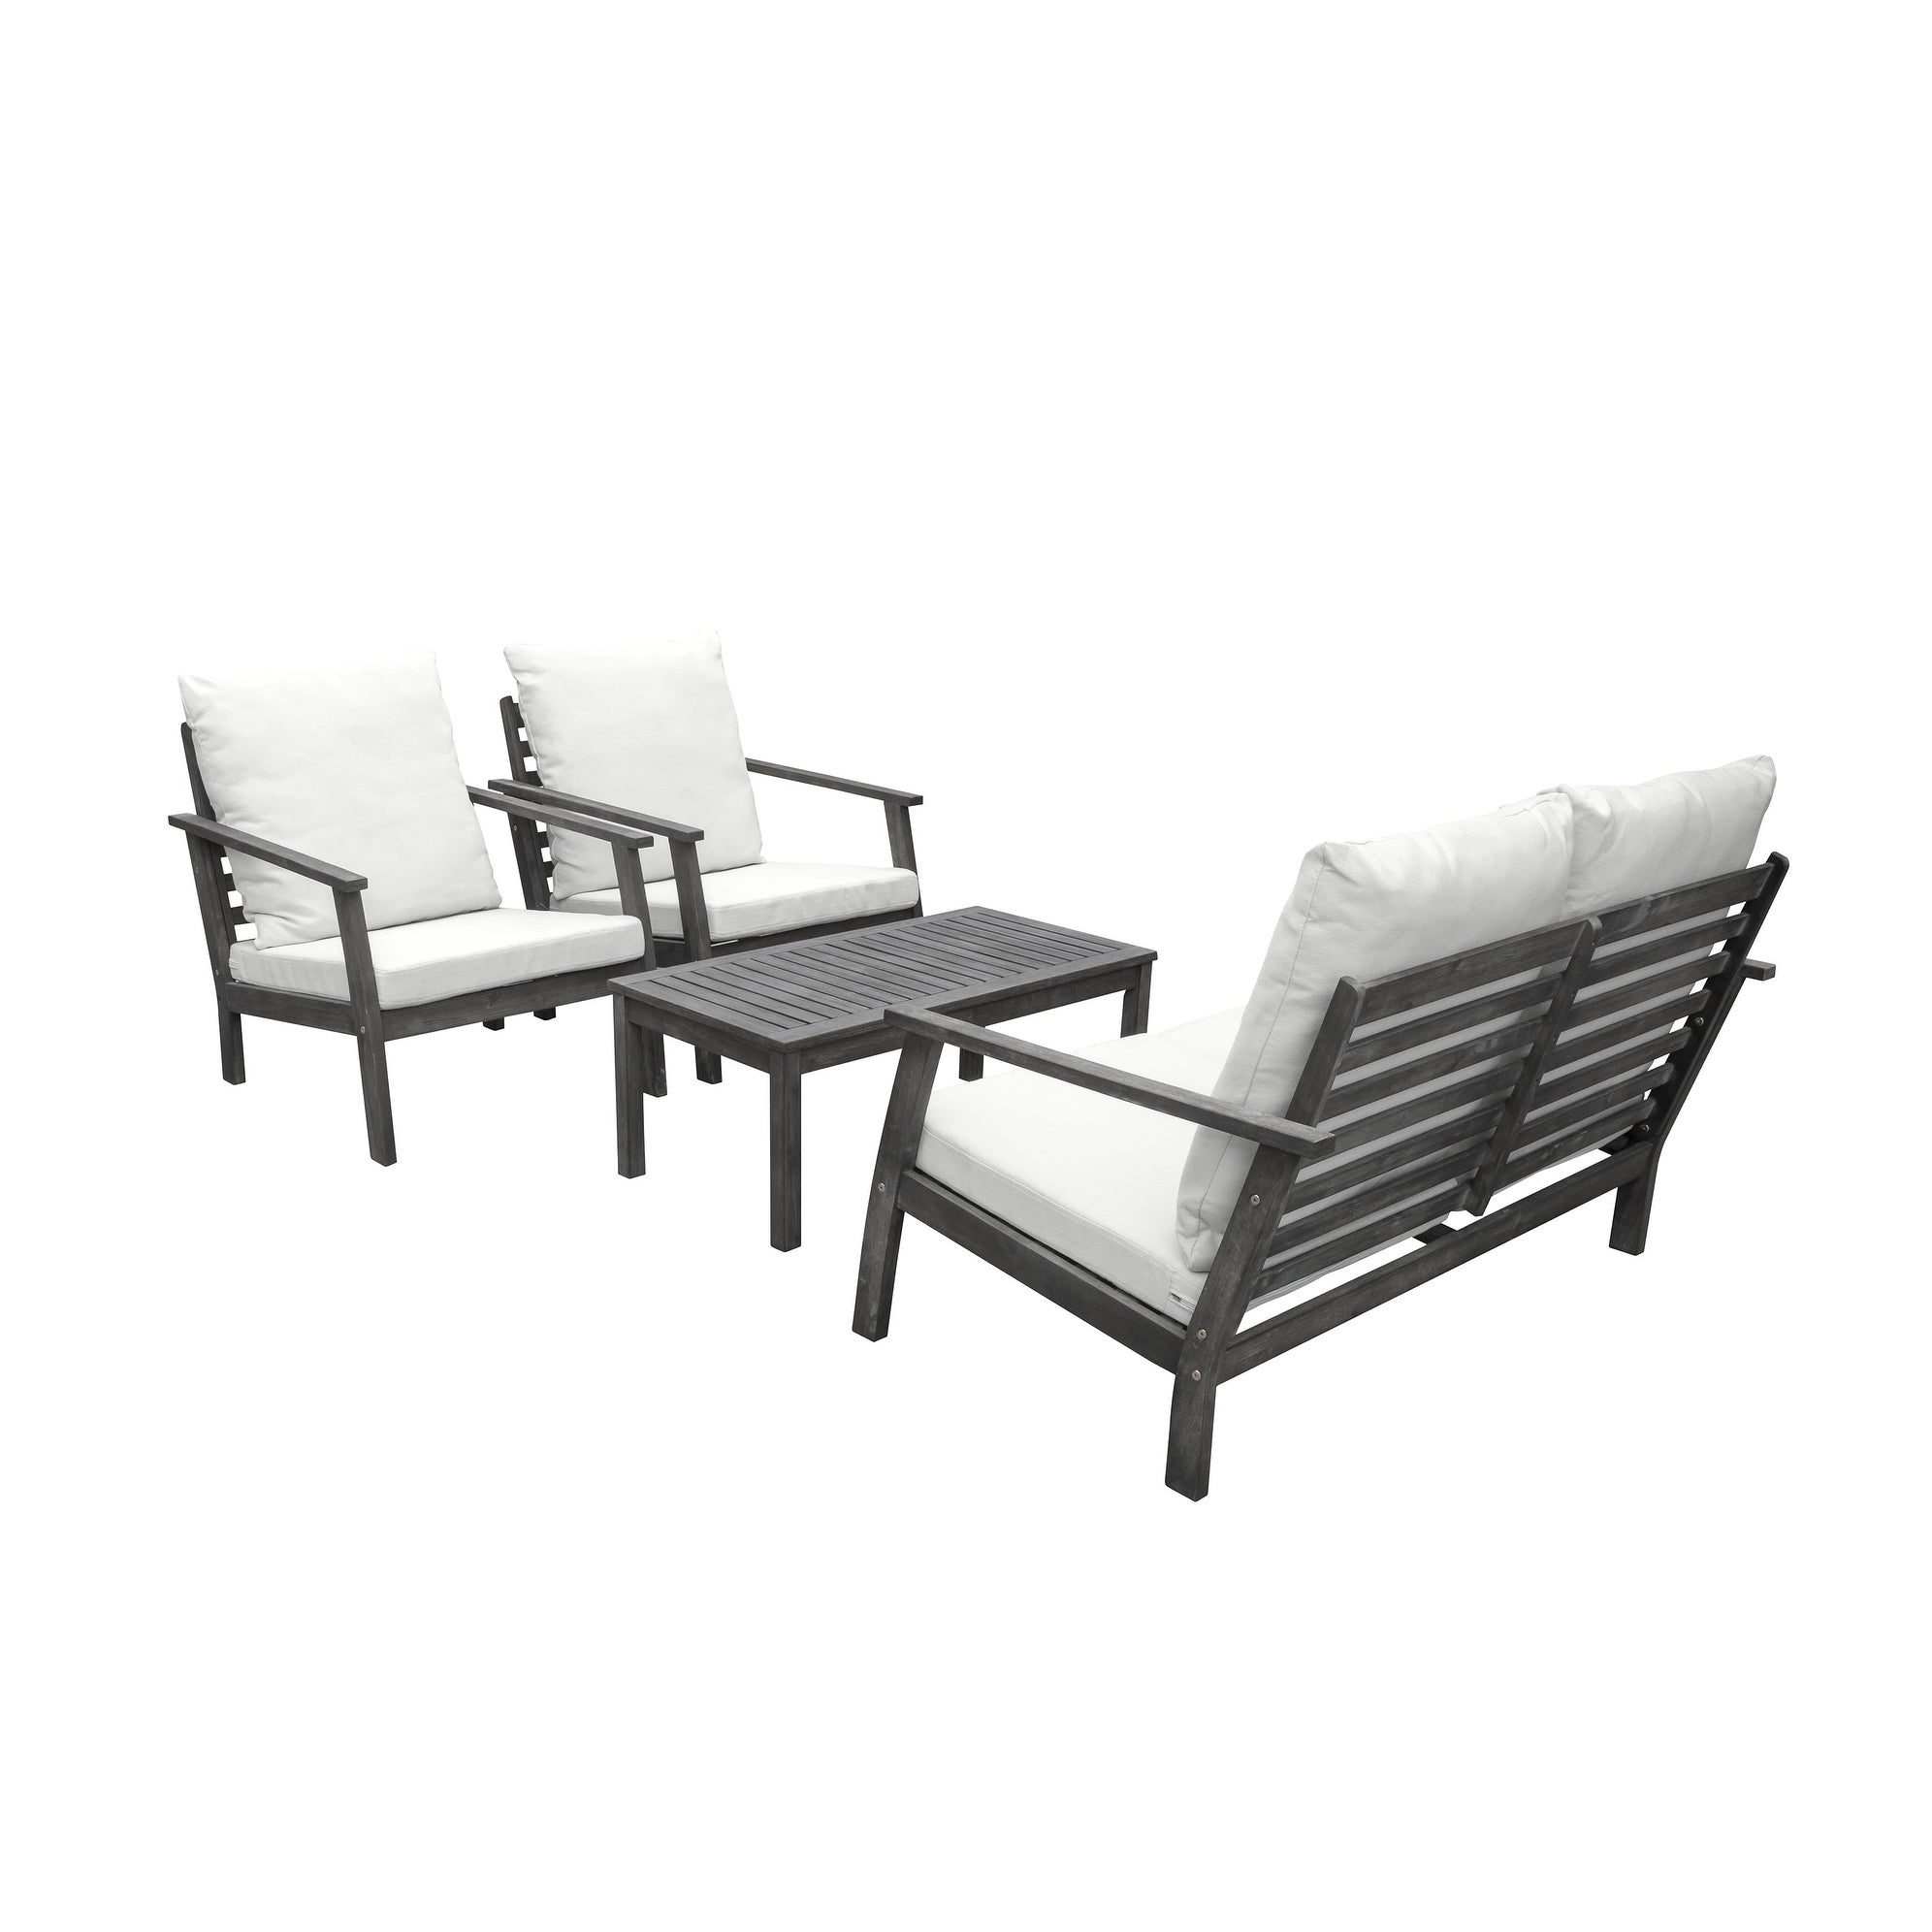 Details About Havenside Home Surfside Outdoor Patio Hand Scraped Wood Sofa Grey 4 Piece Sets Throughout Famous Havenside Home Surfside Outdoor Lounge Chairs (View 18 of 25)